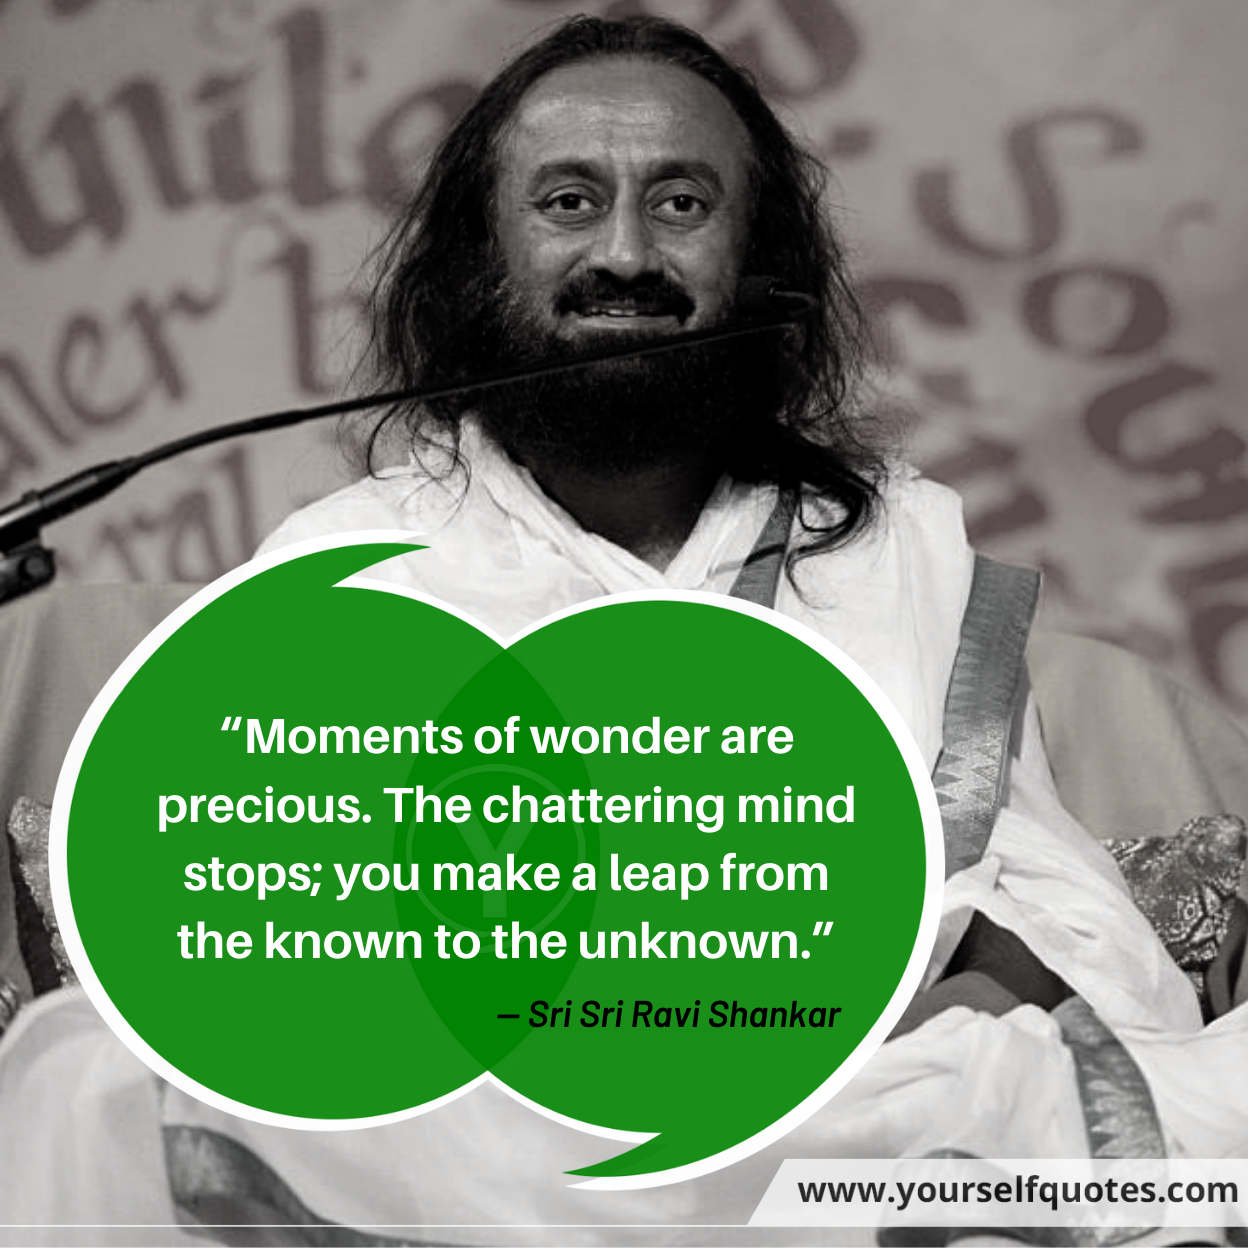 Art of Living Quote Life by Gurudev Sri Sri Ravi Shankar